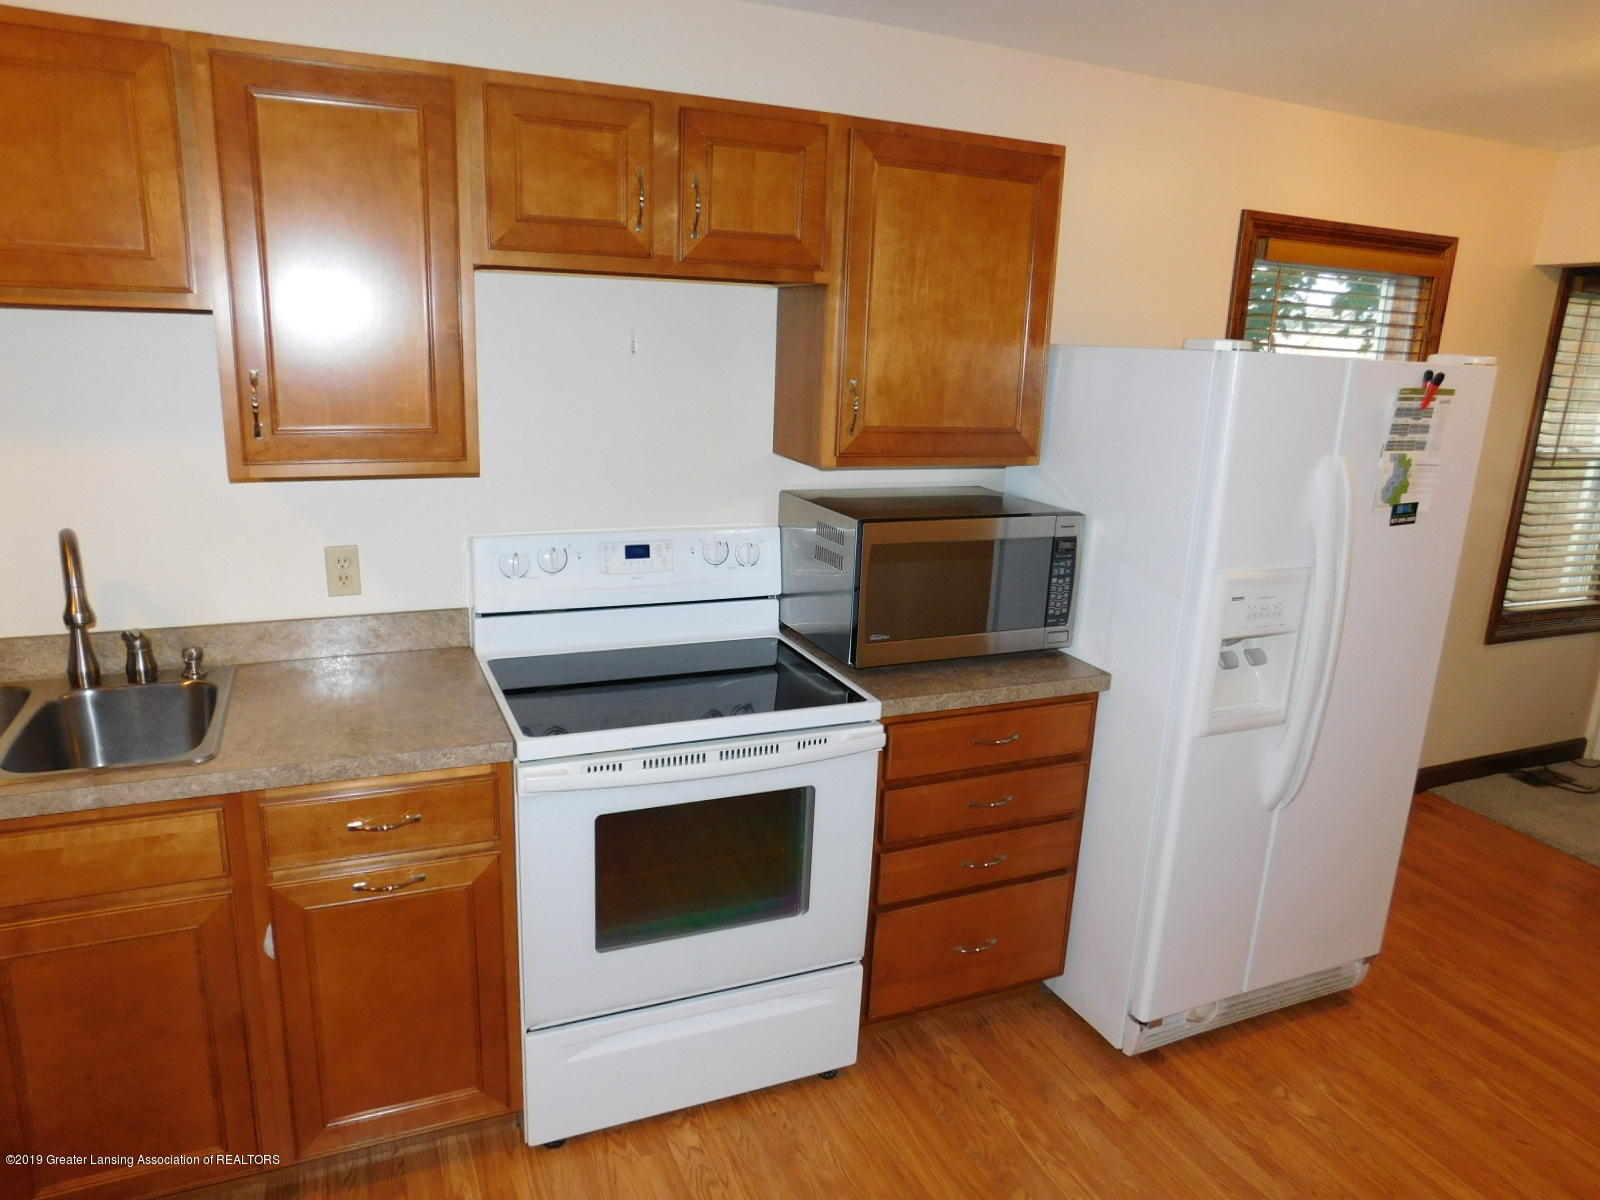 725 Merrill Ave - KITCHEN - 12